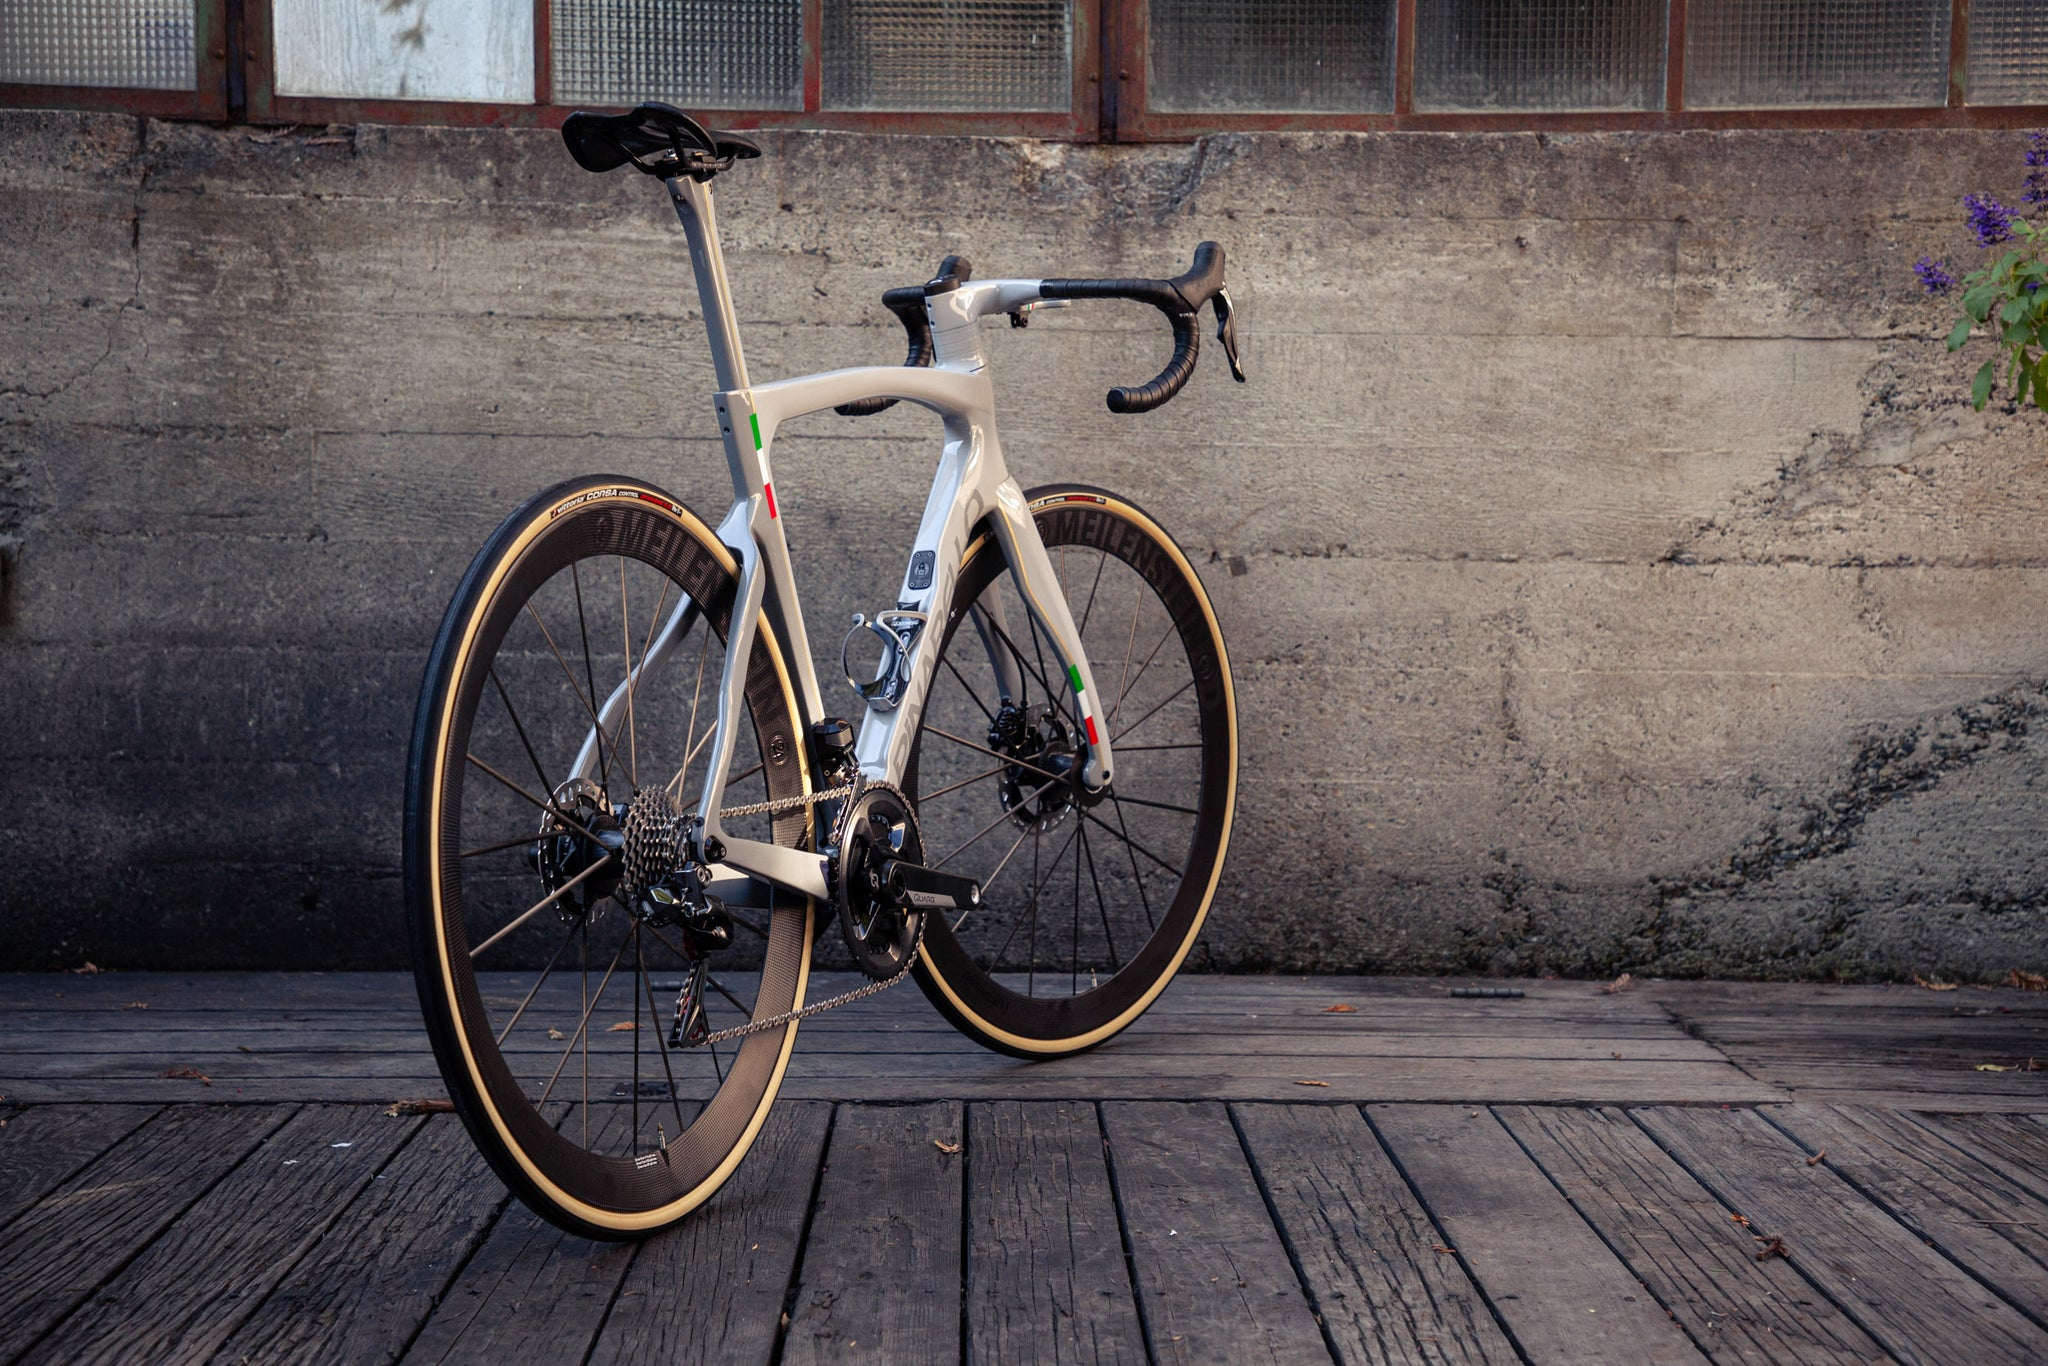 pianrello dogma f12 custom paint velocolour rear angle